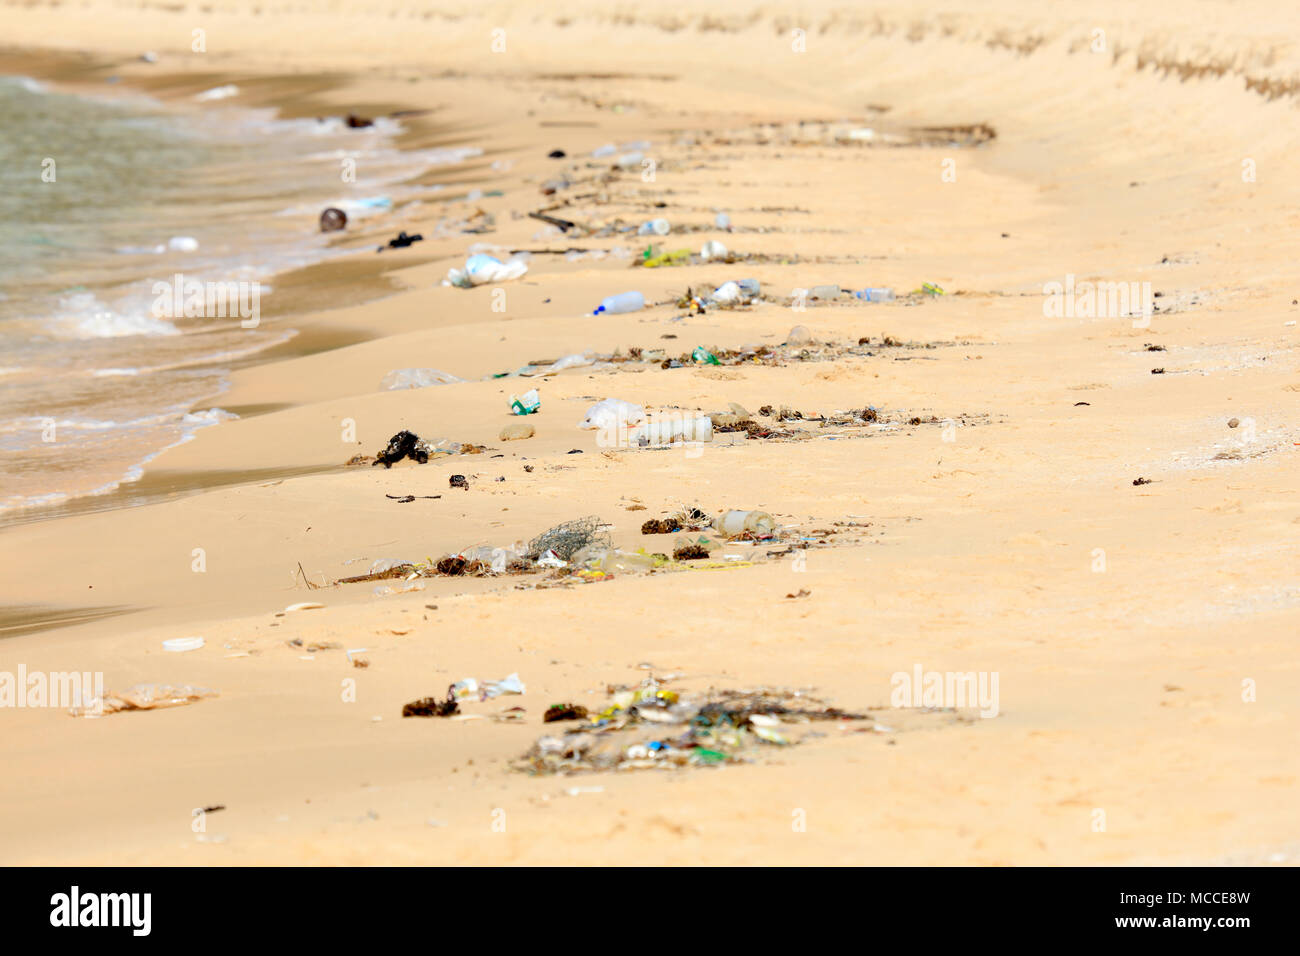 Plastic pollution on a tourist beach in Cambodia - Stock Image